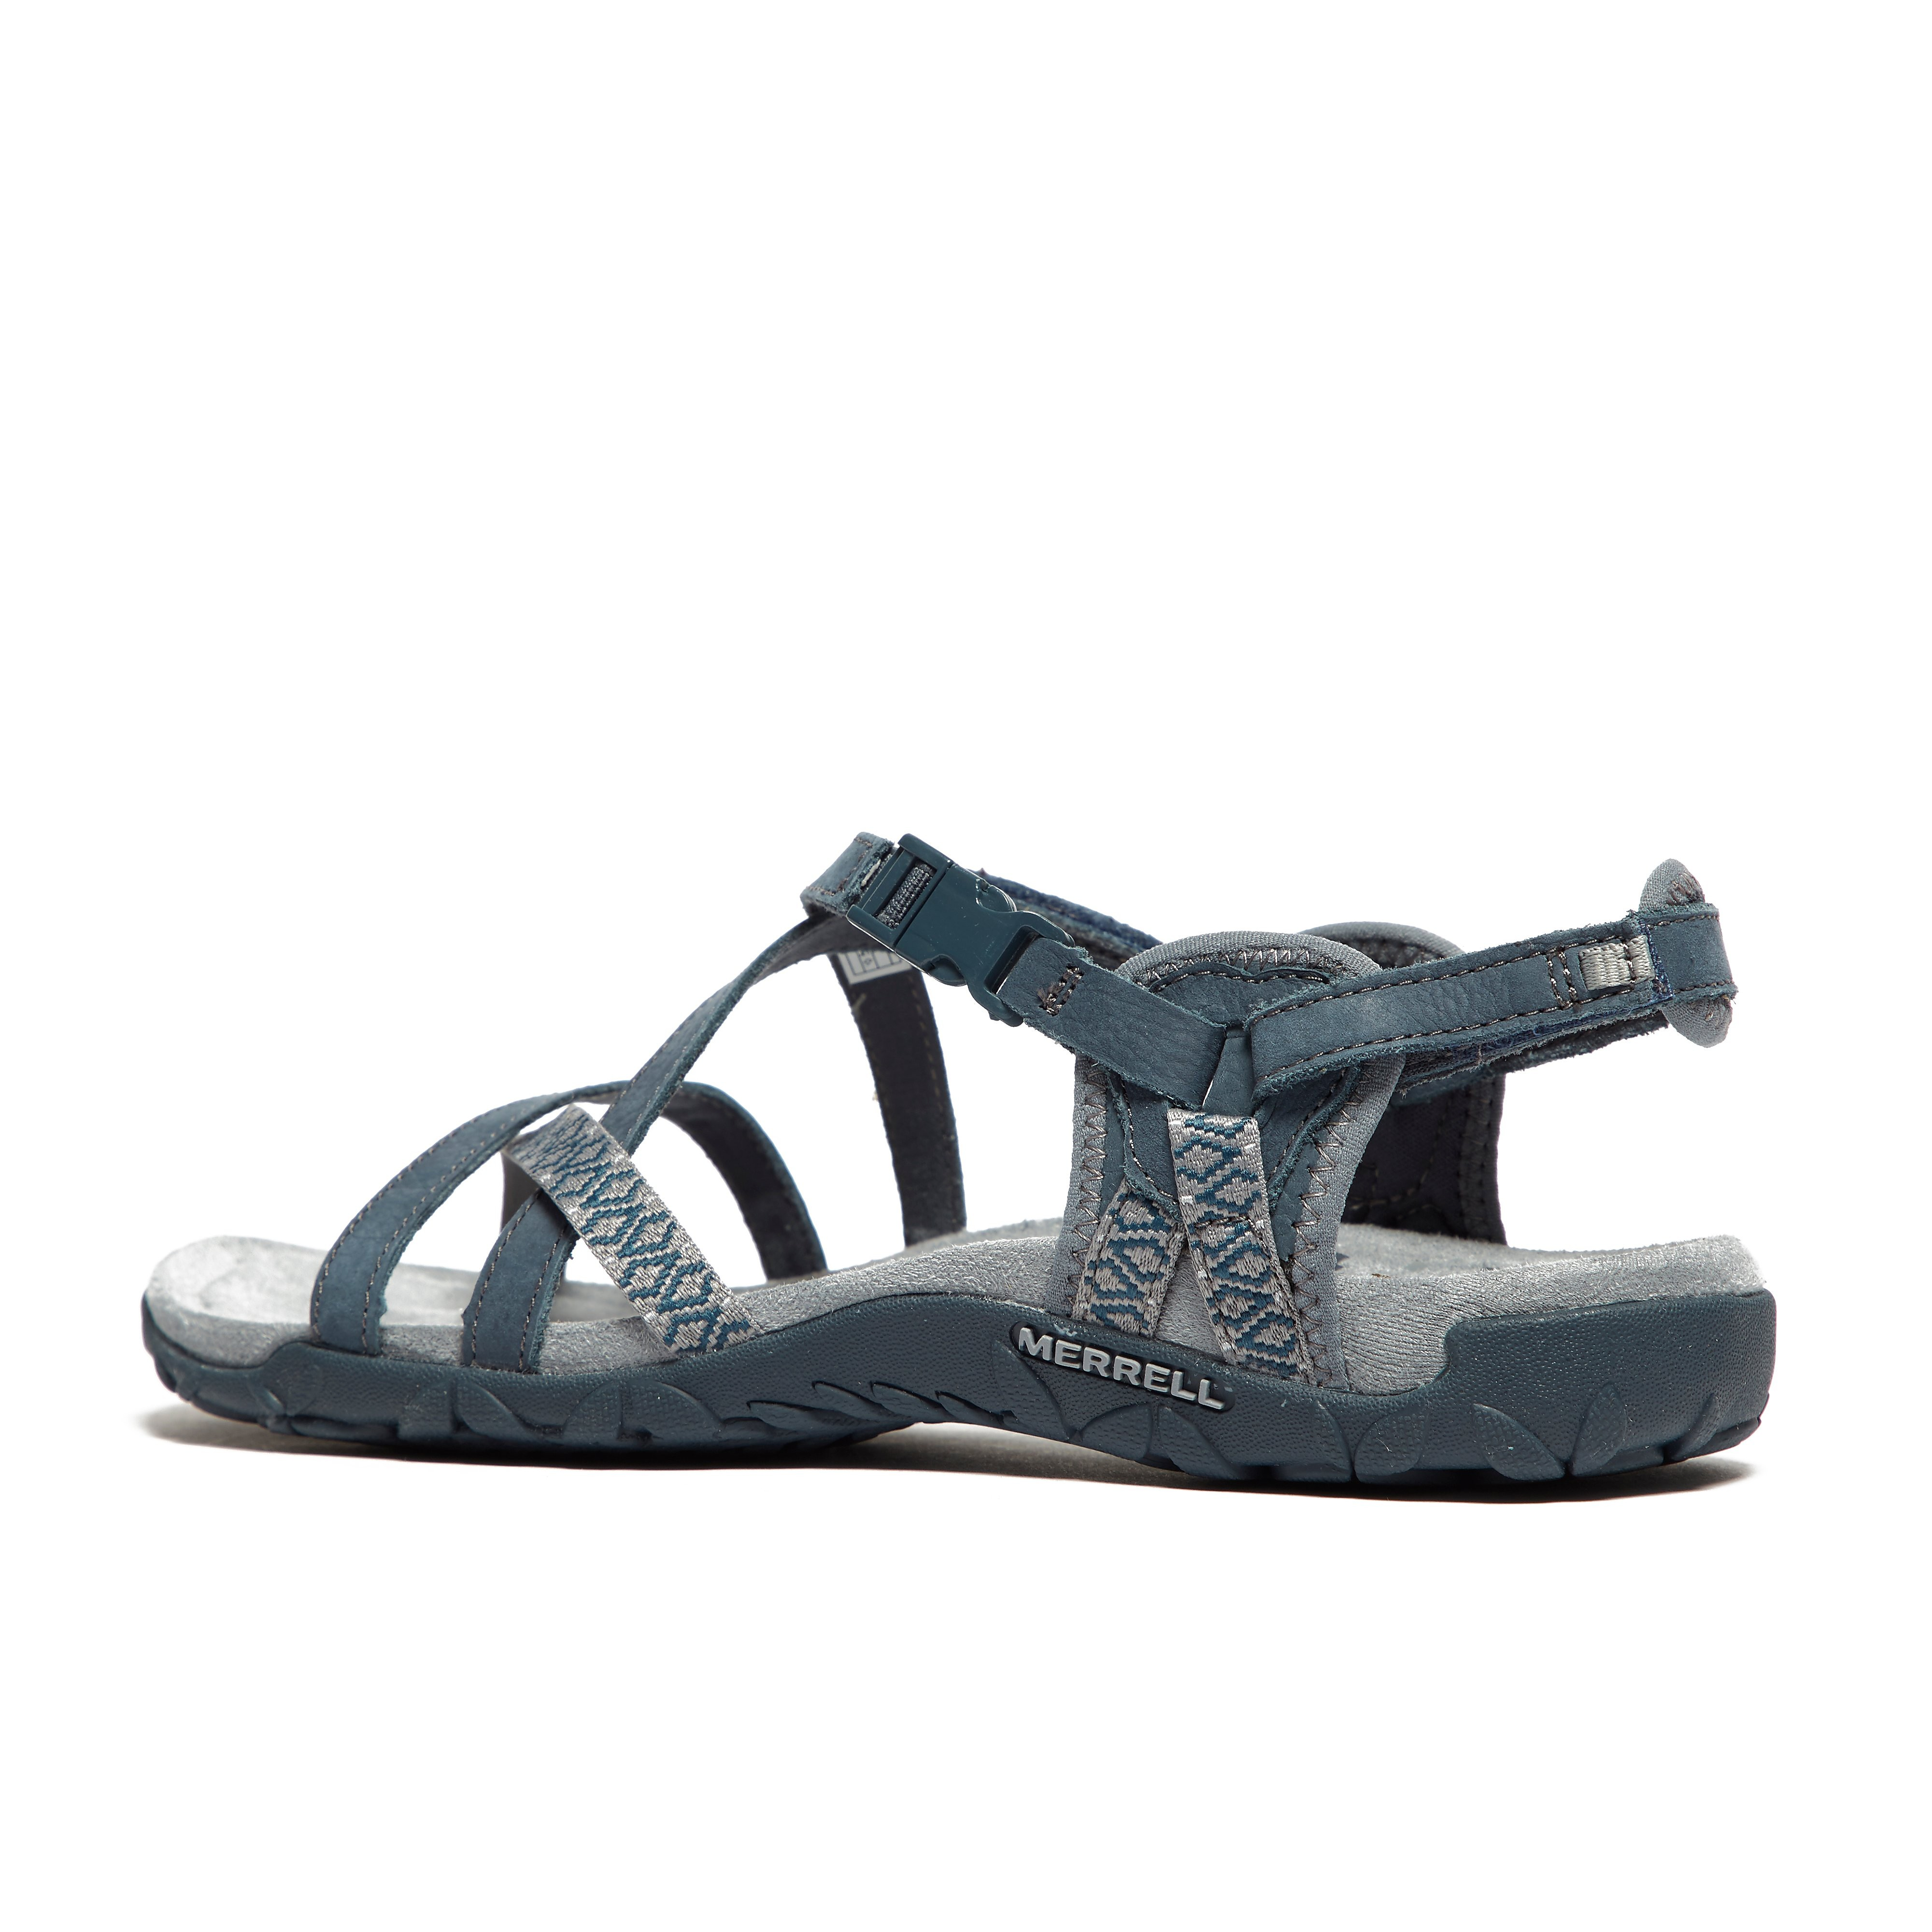 Merrell Terran Lattice II Women's Walking Sandals